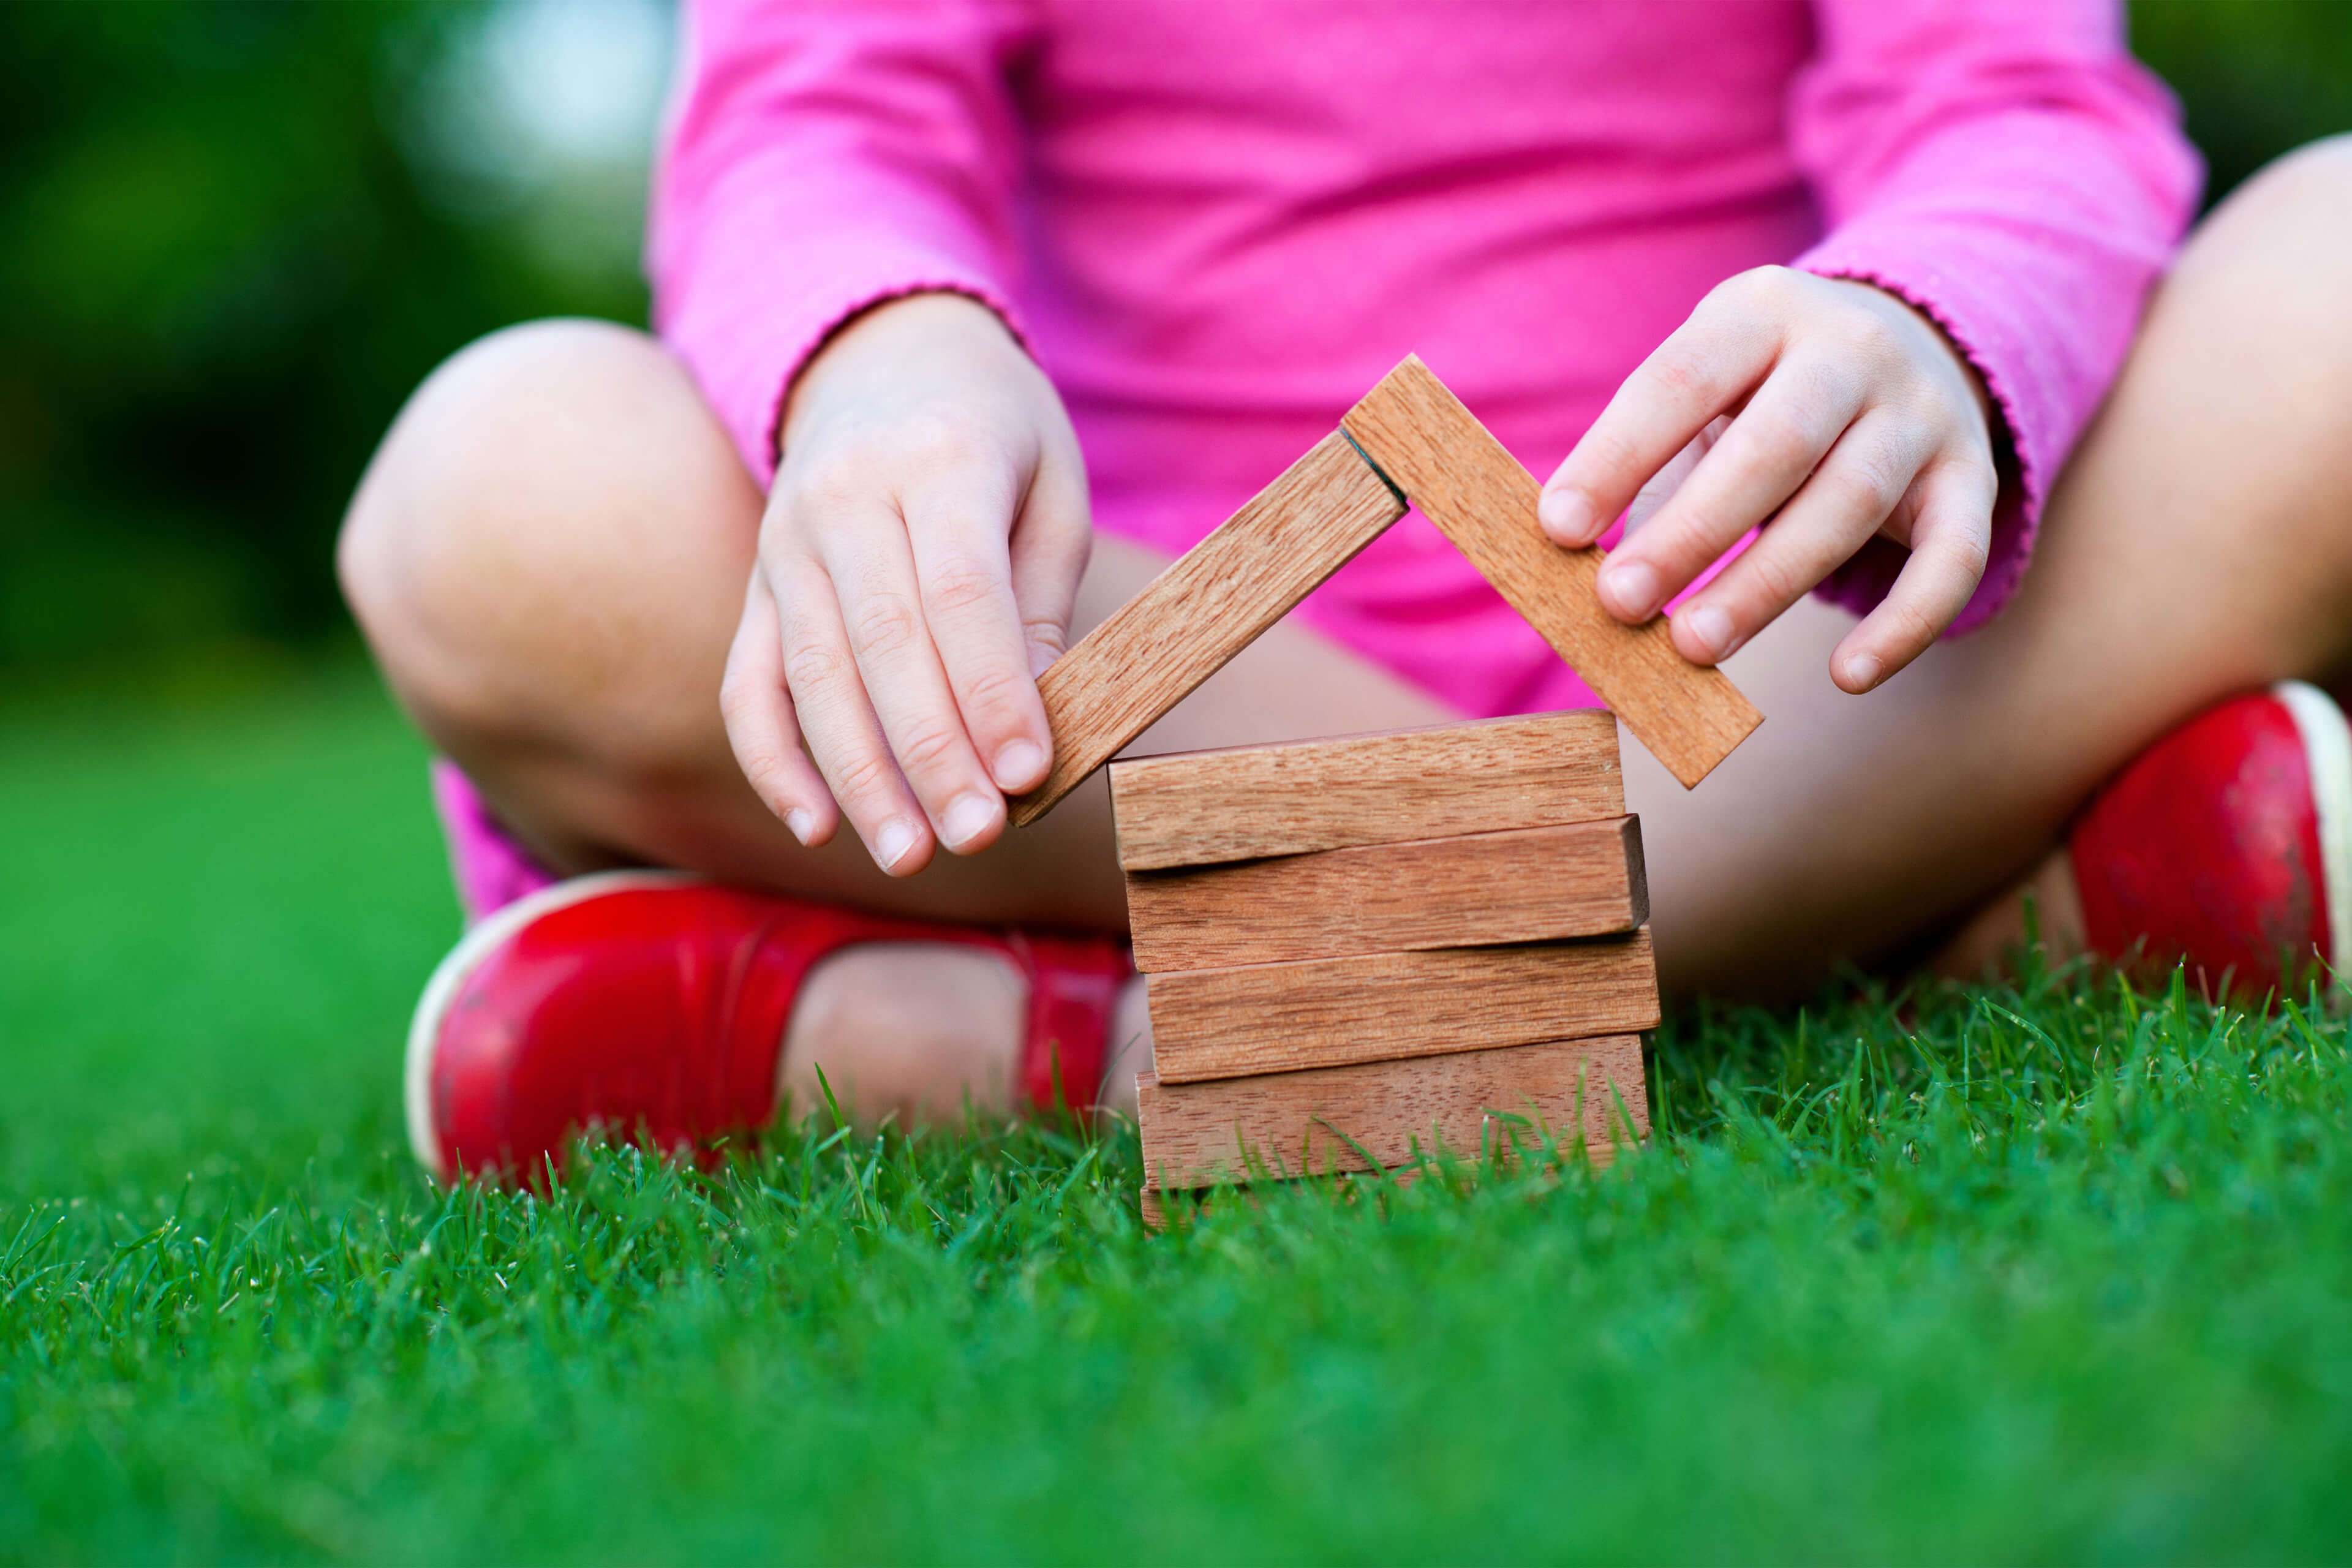 Child with wooden building blocks